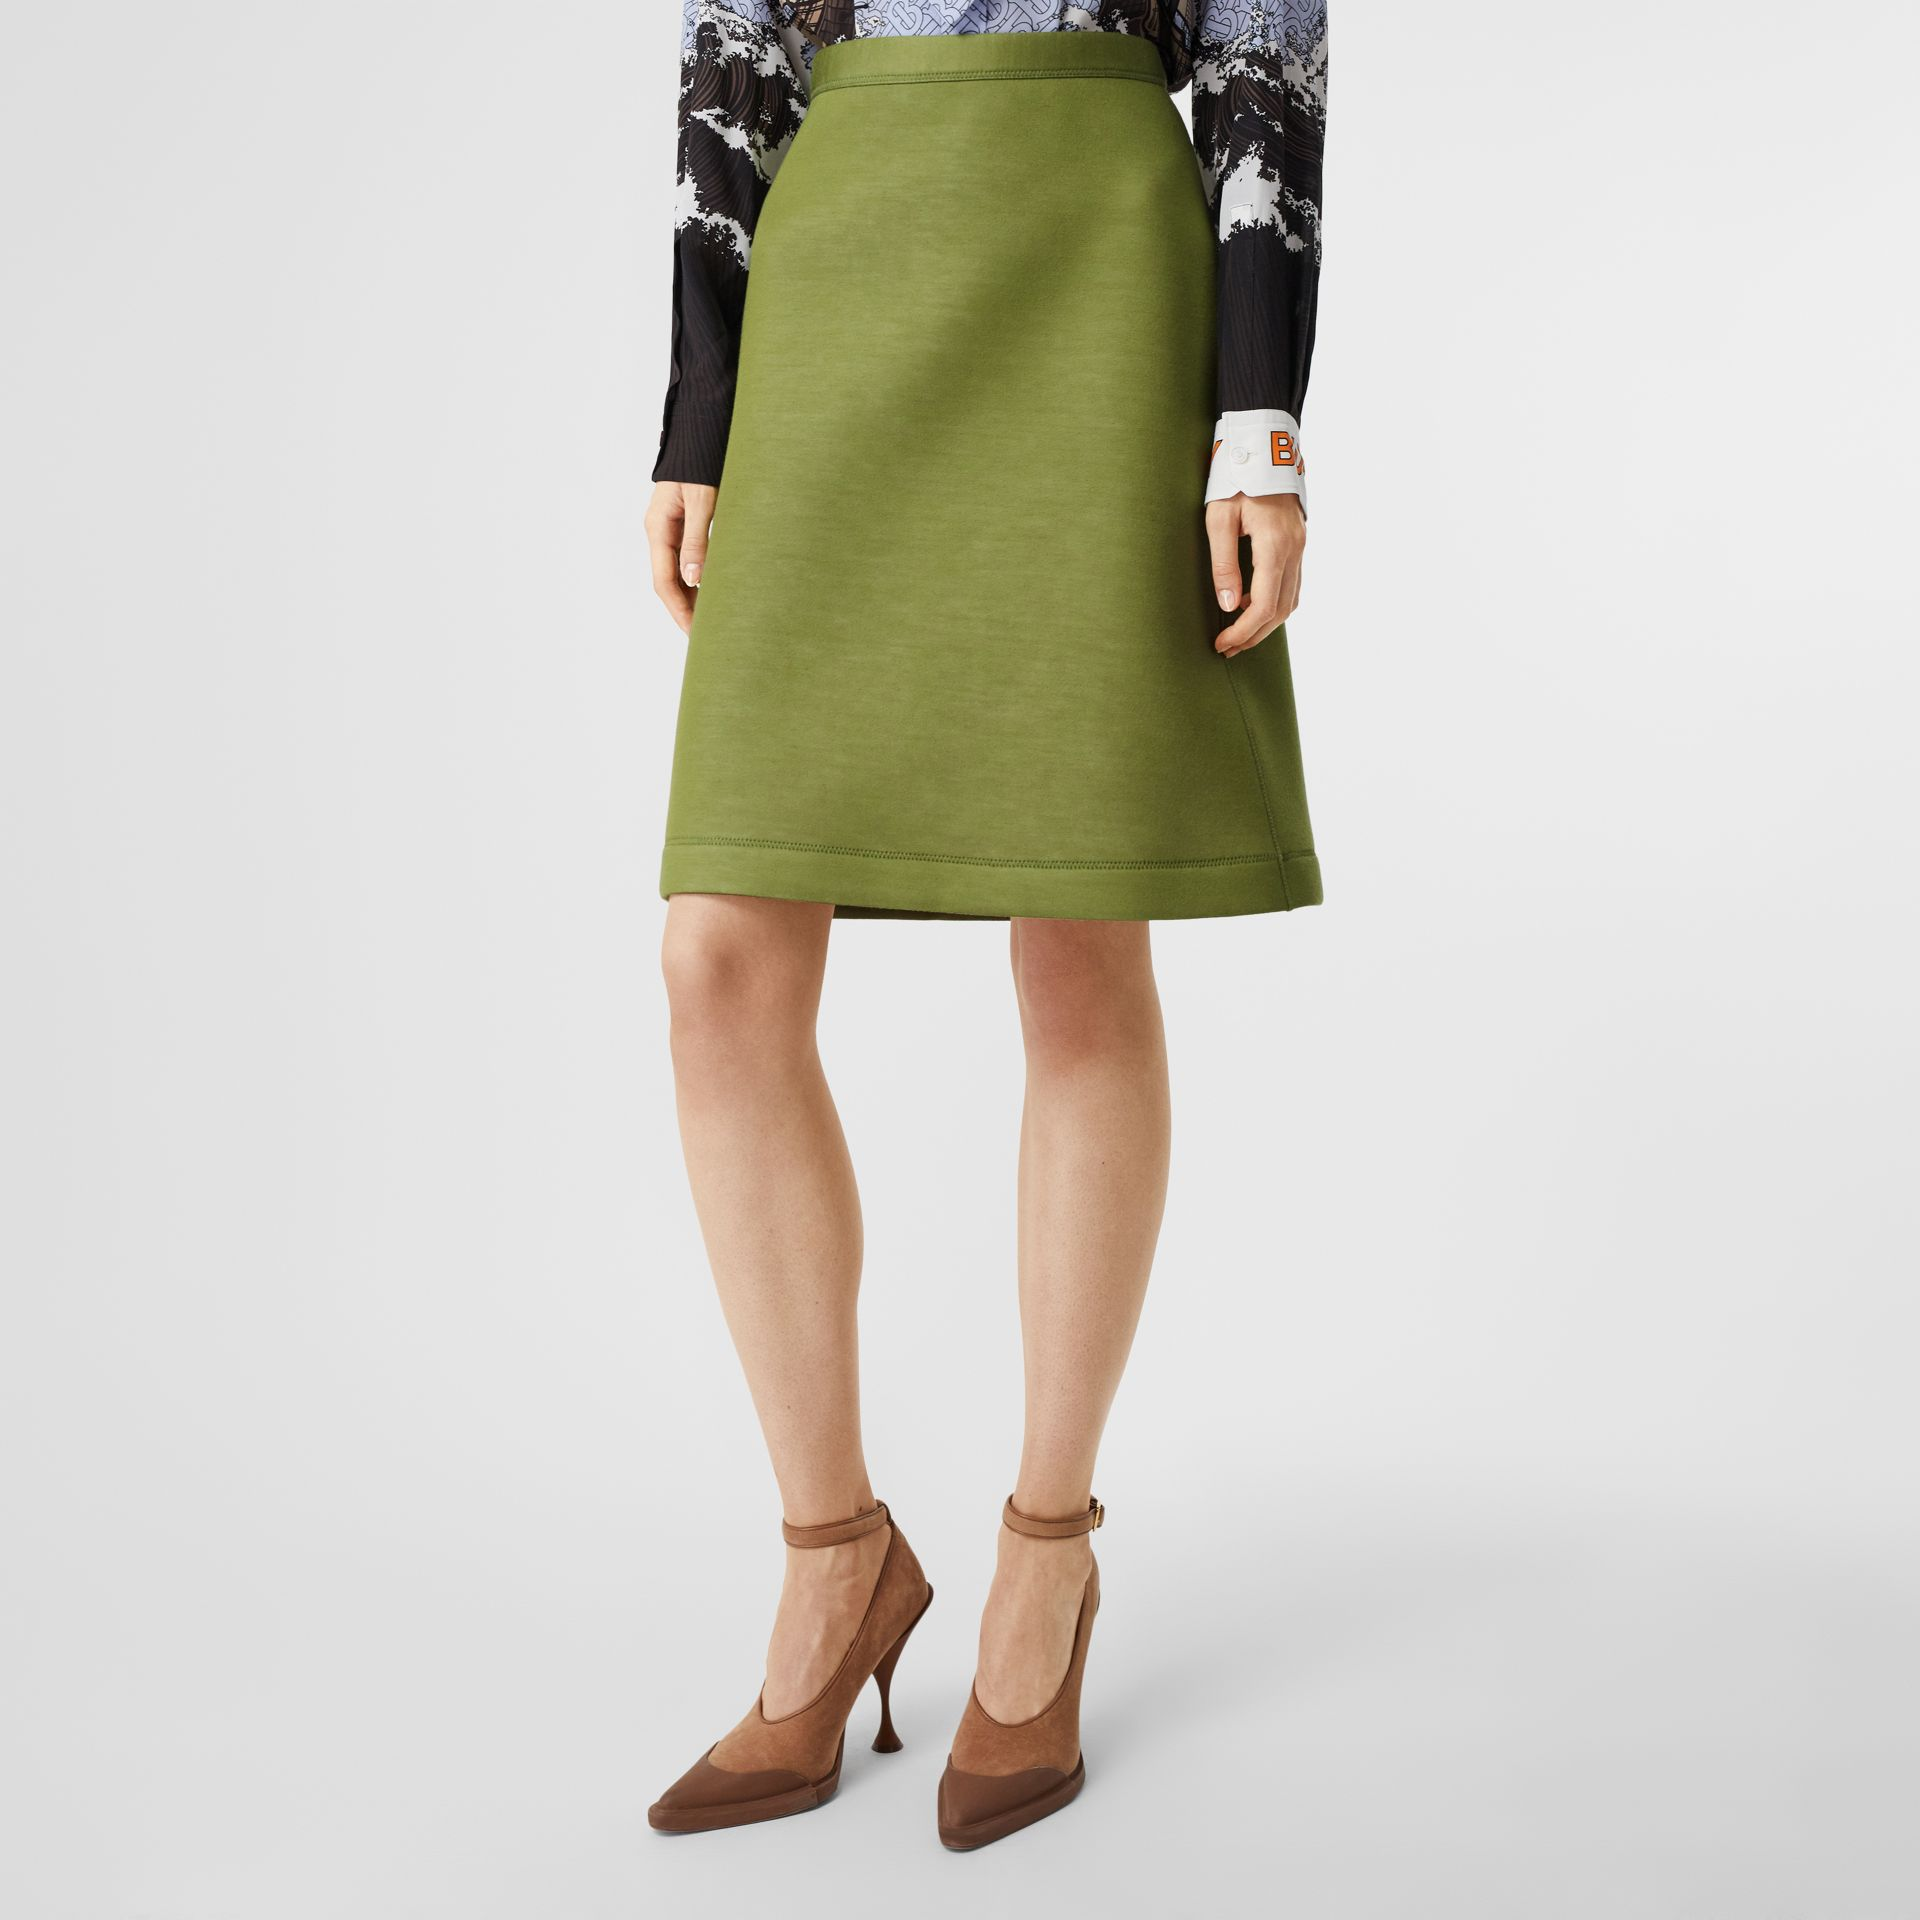 Double-faced Neoprene Skirt in Cedar Green - Women | Burberry United Kingdom - gallery image 5